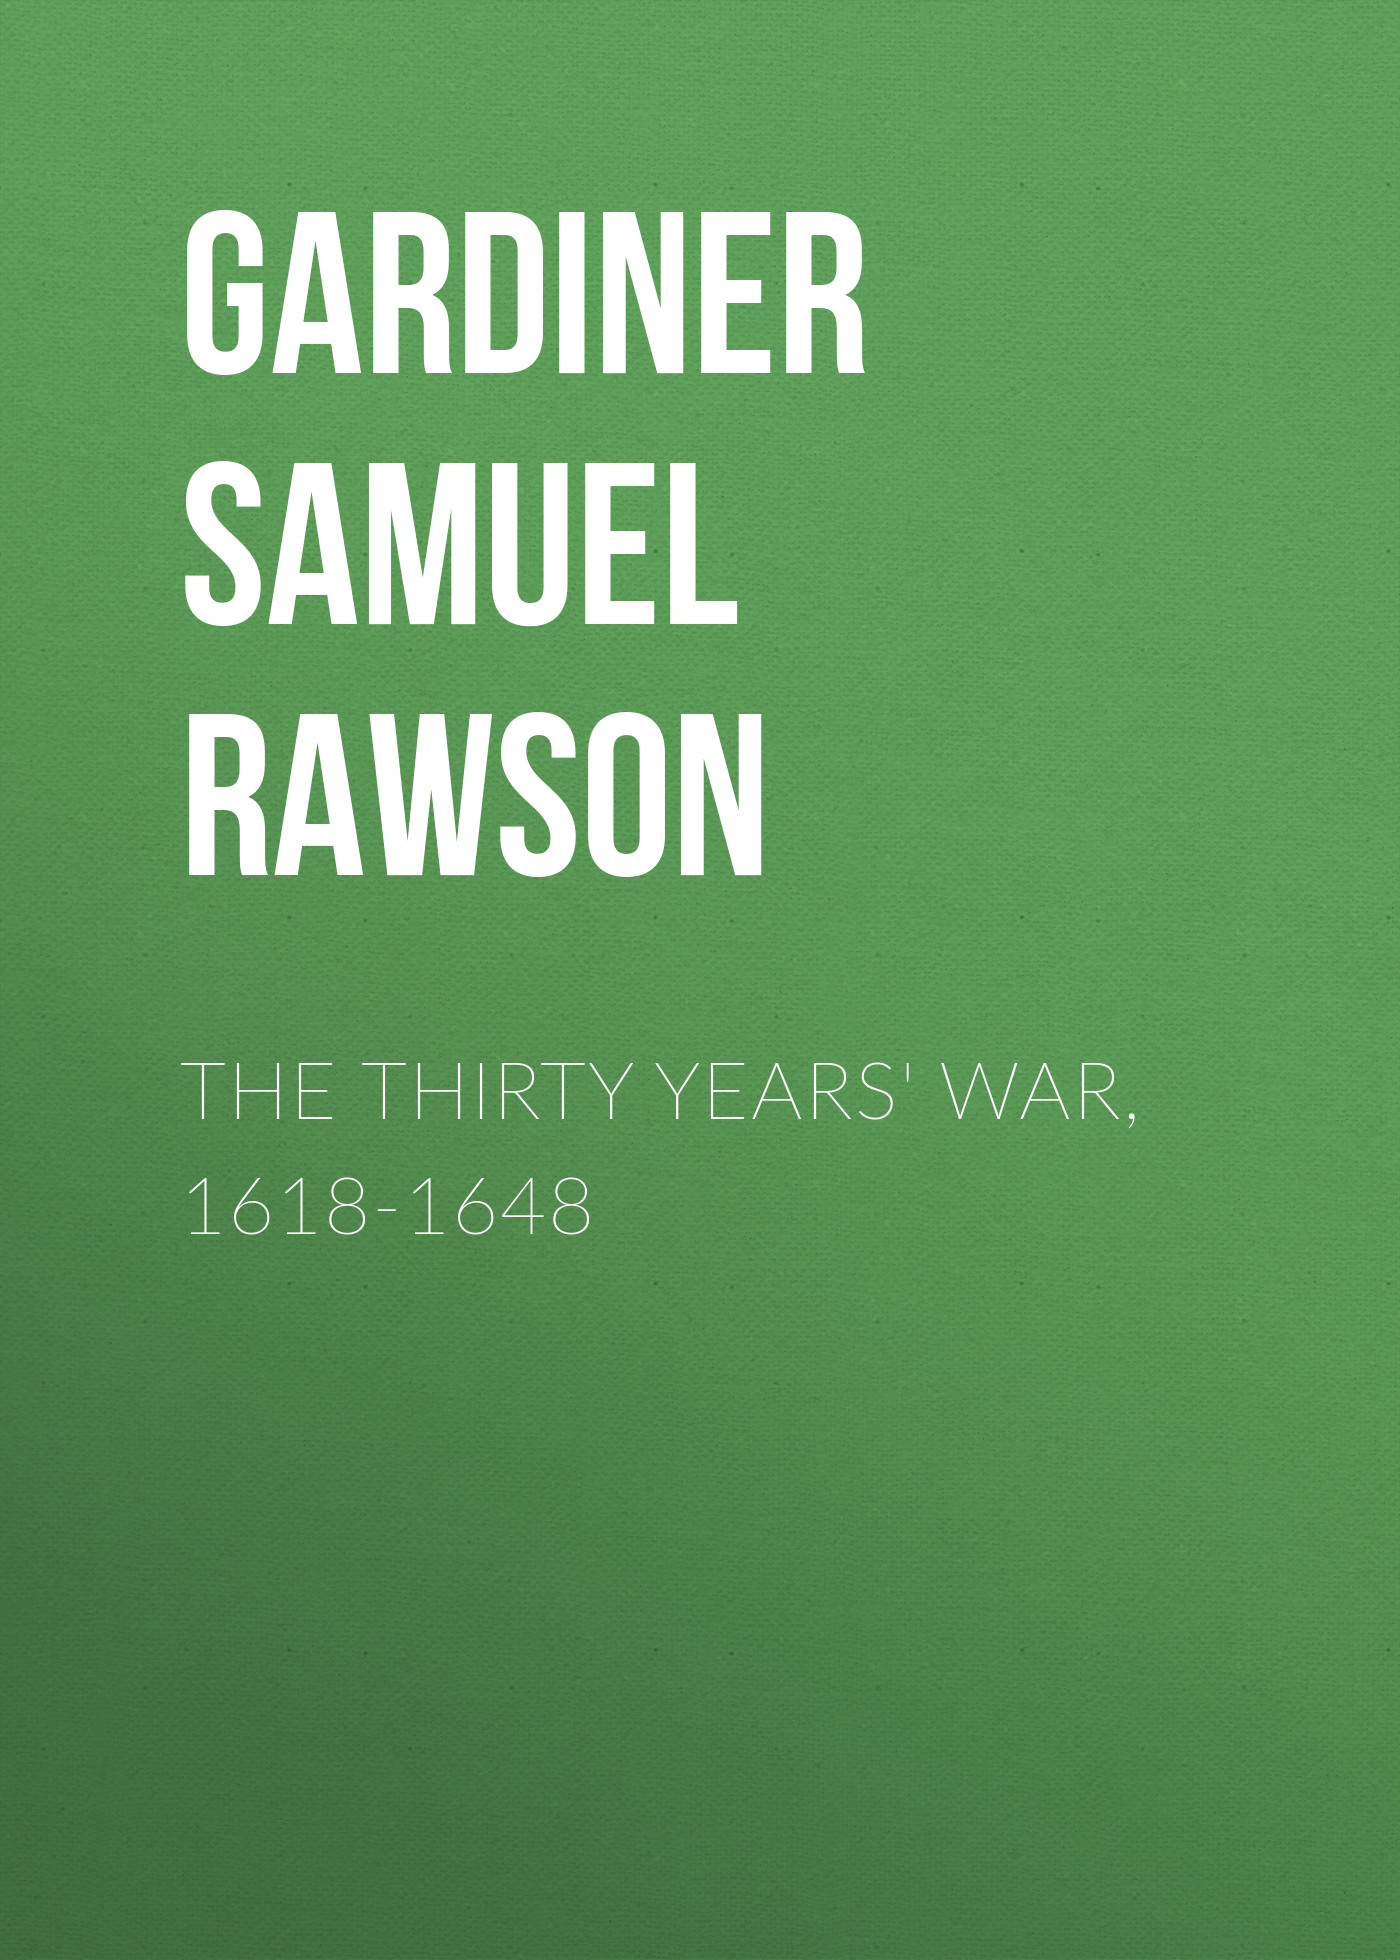 лучшая цена Gardiner Samuel Rawson The Thirty Years' War, 1618-1648